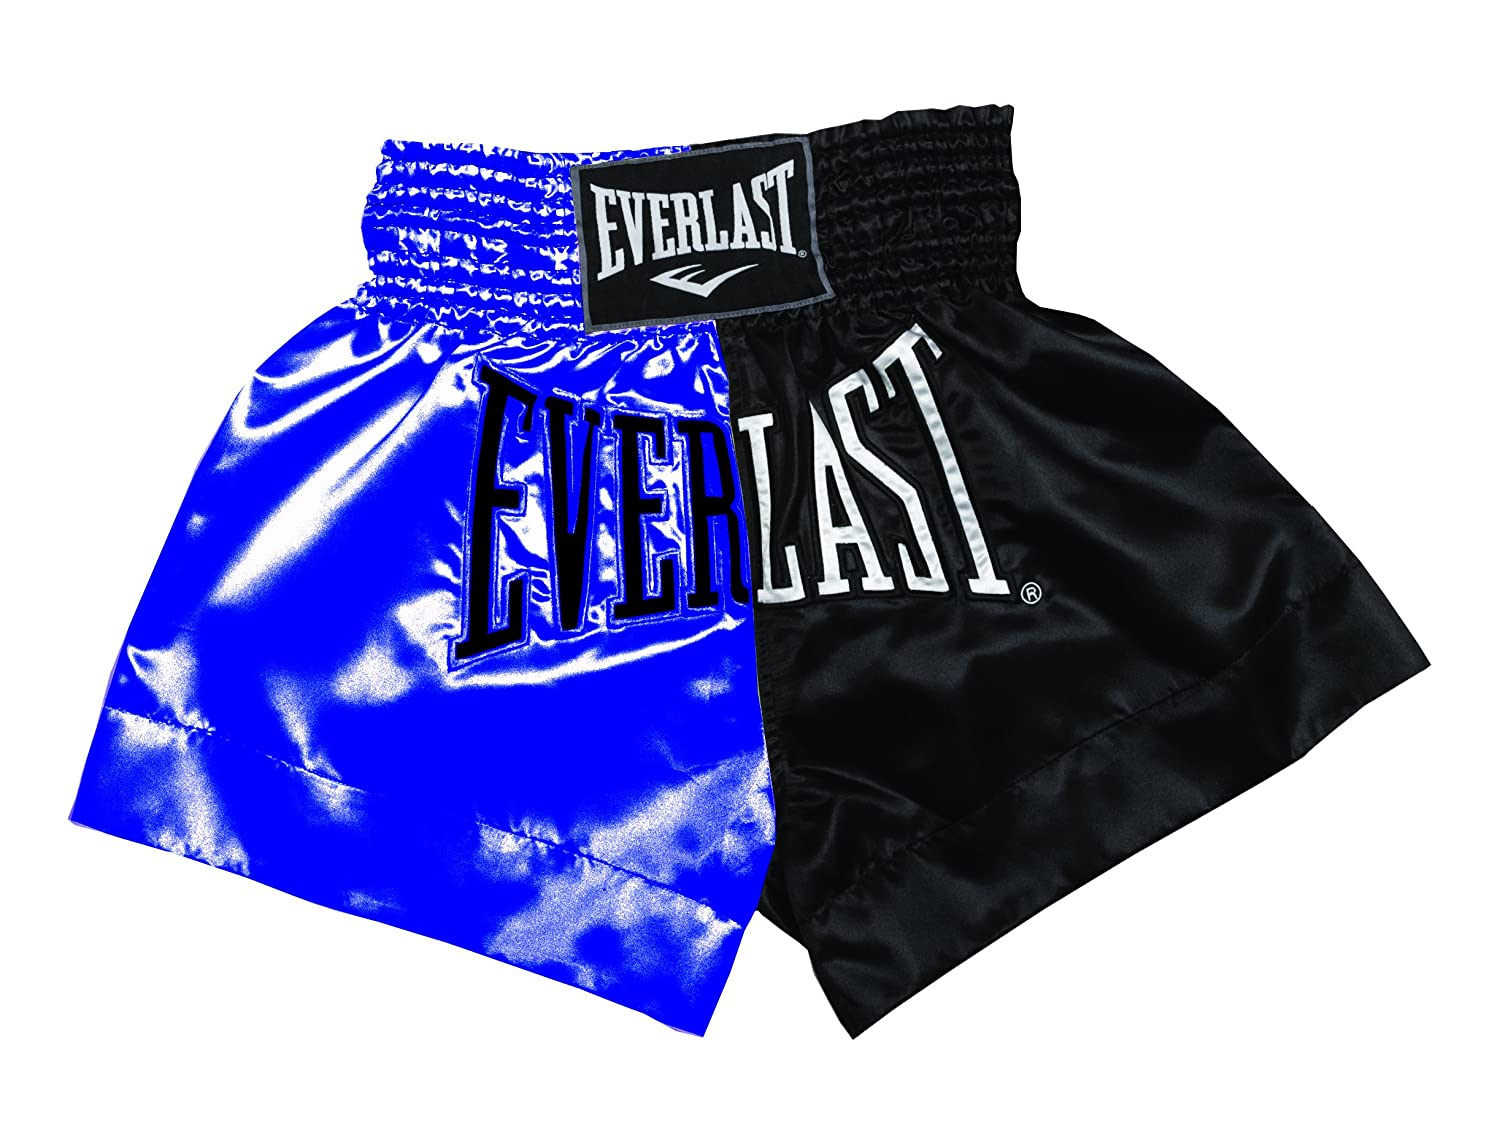 Pantalon corto everlast house